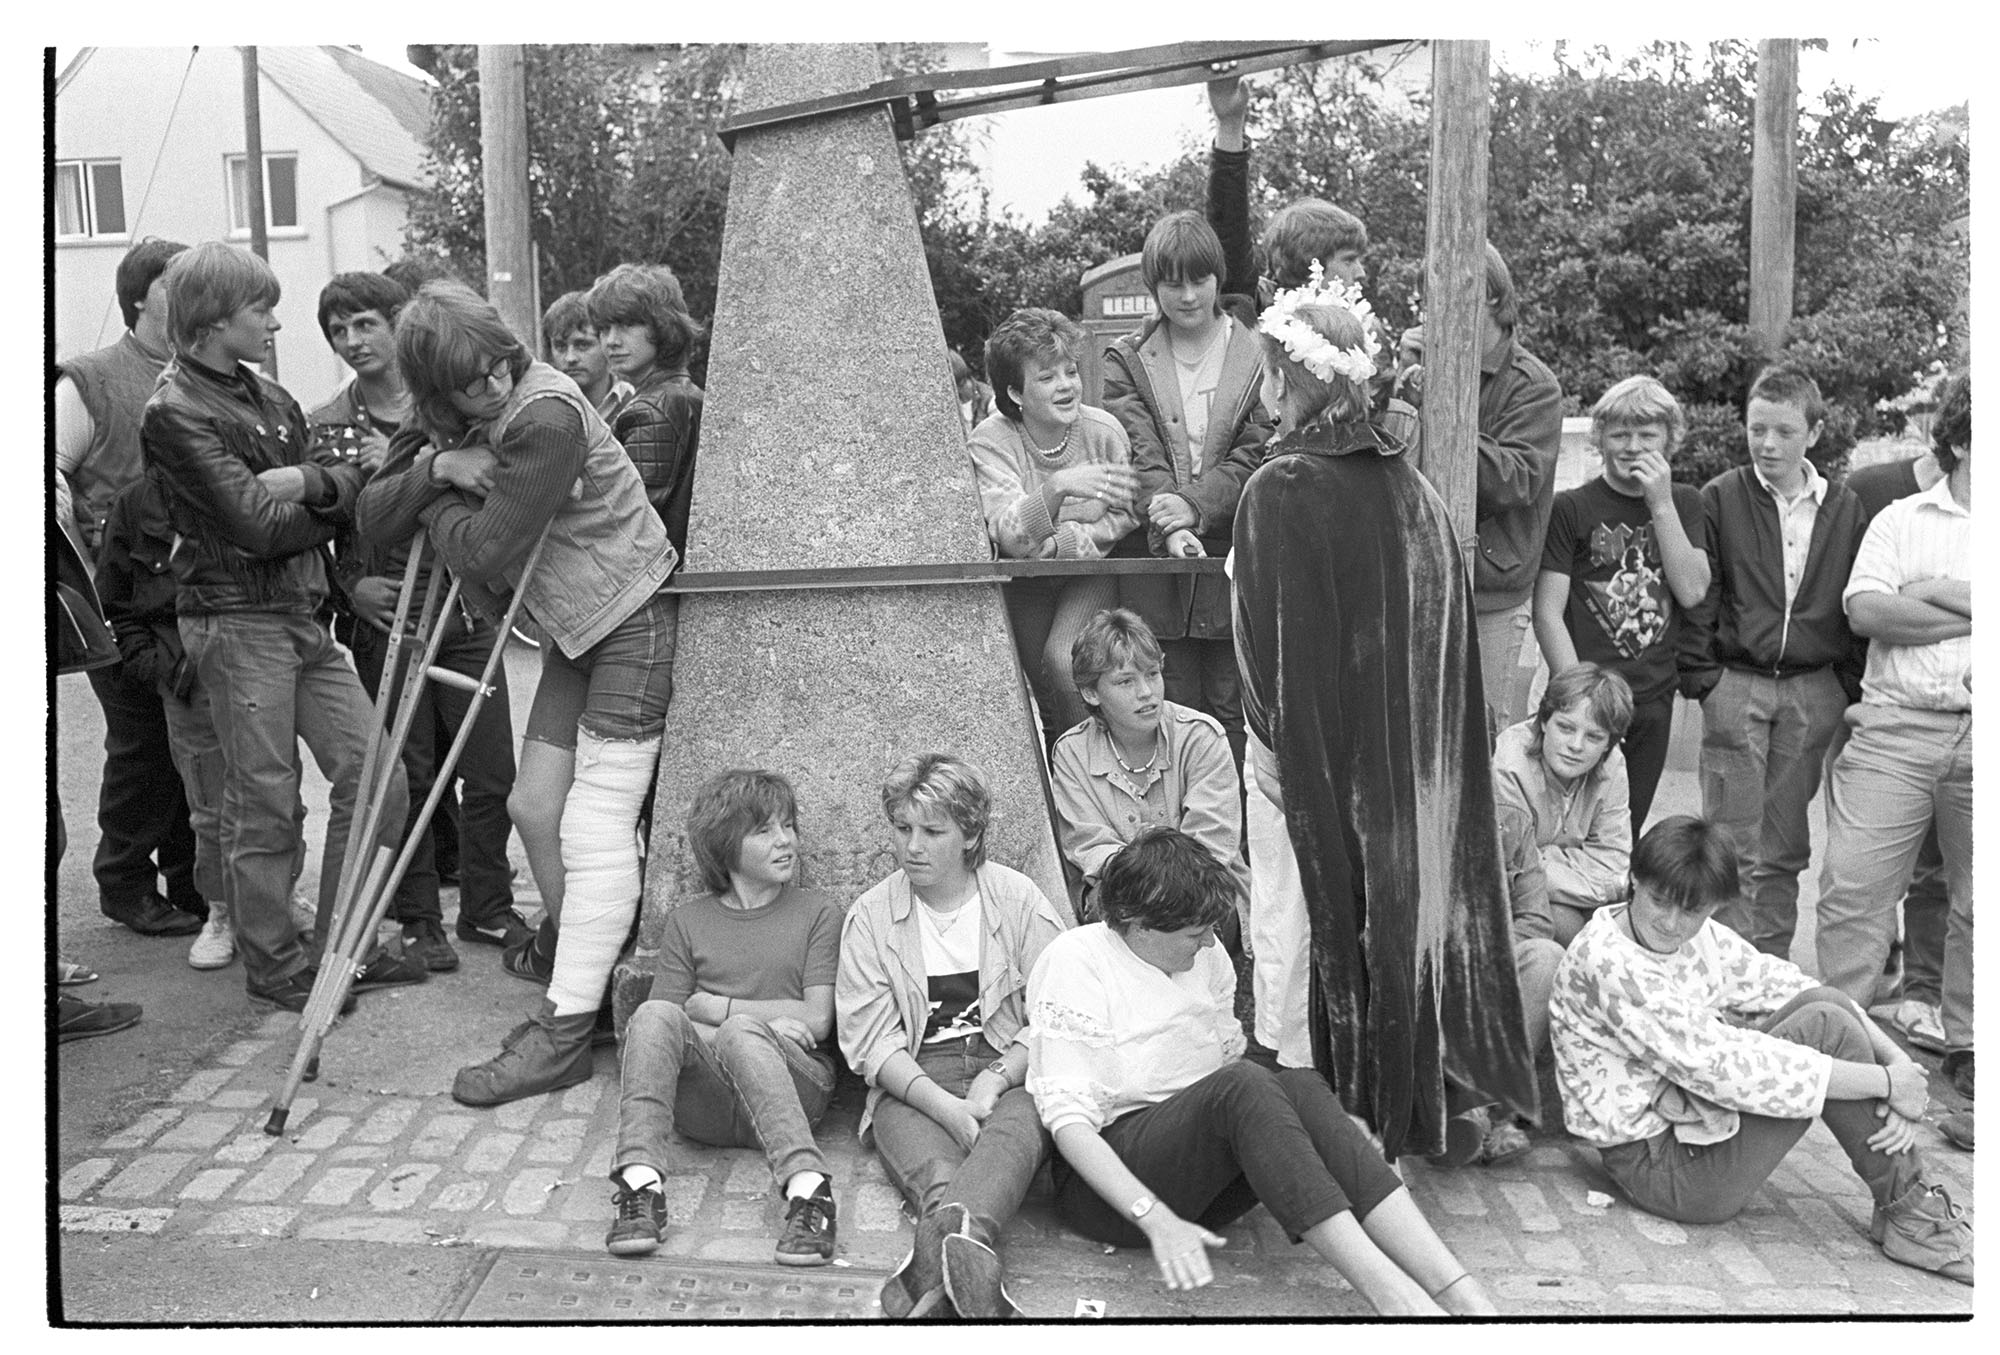 Crowd of young people around village pump at start of Fair. <br /> [A group of young men and women stood and sat around the village pump at the start of Winkleigh Fair. The Fair Queen is talking to some of the people and one young man has a pair of crutches.]